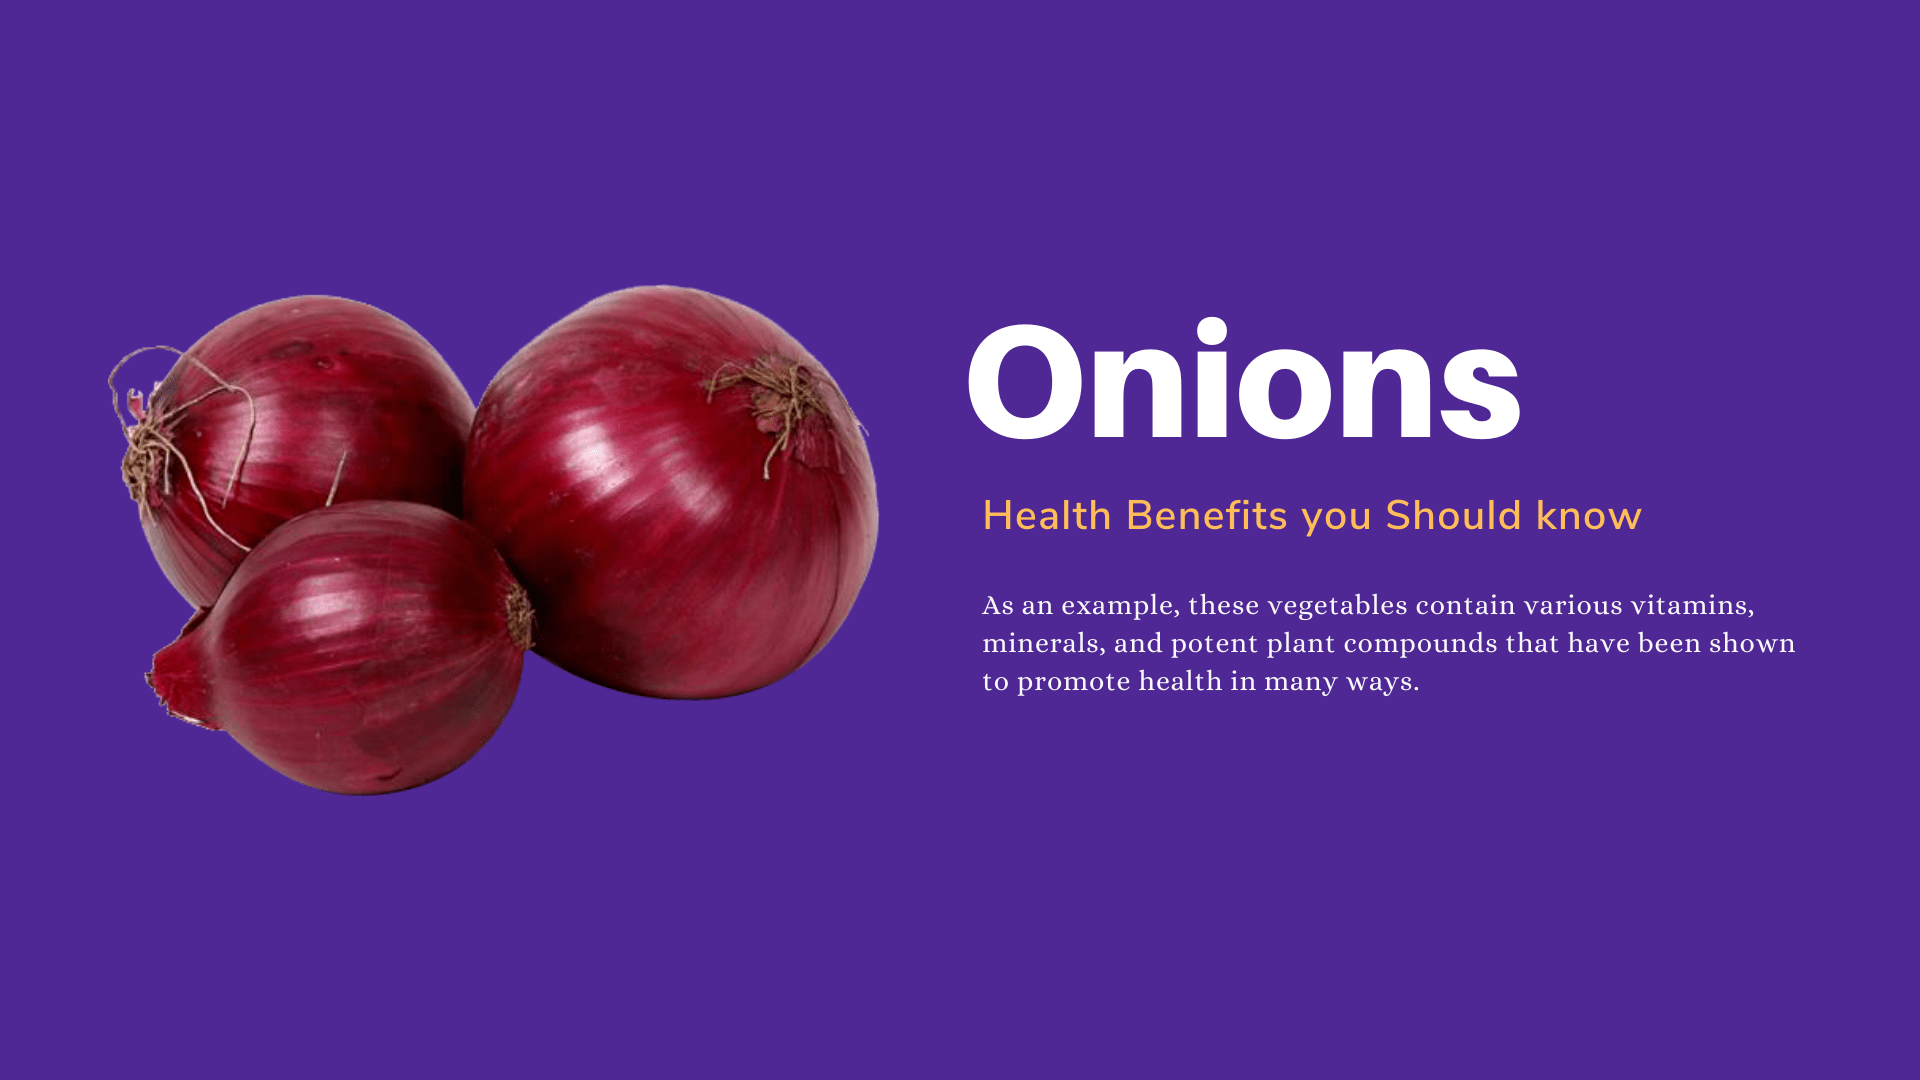 Onions | 10 Health Benefits that you Should know